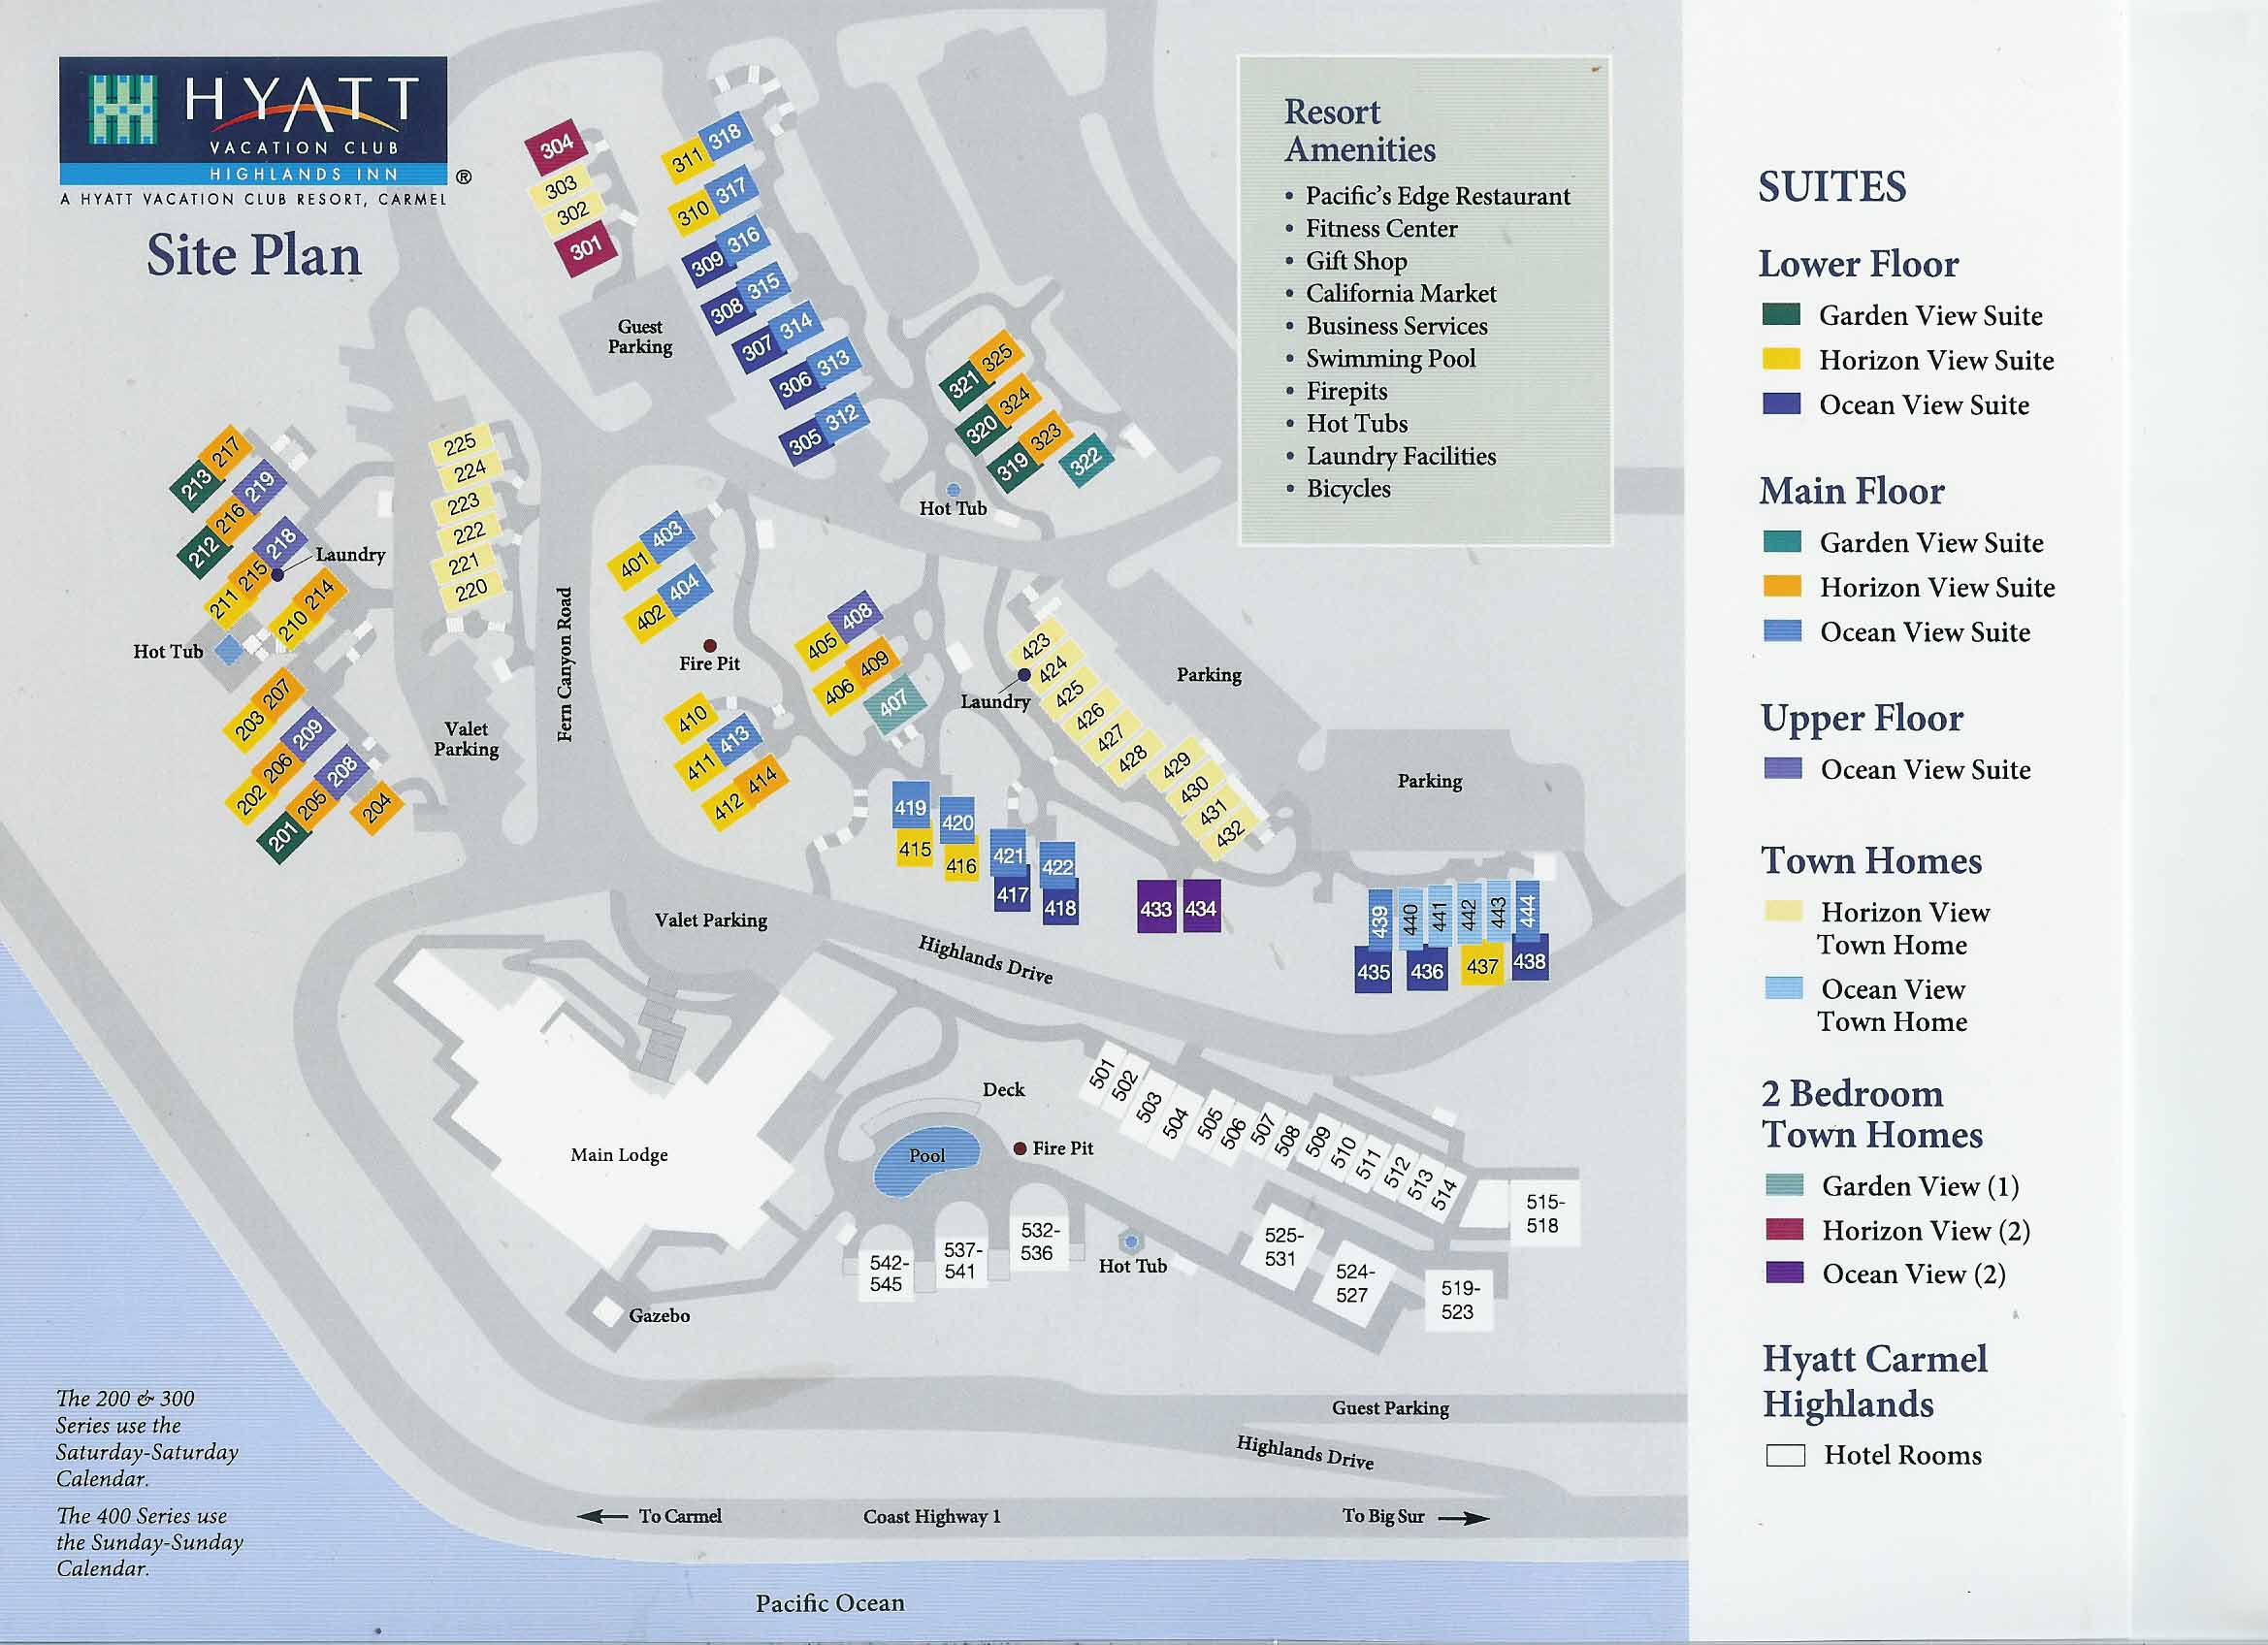 map of waikoloa beach resort with Hyatt Highlands Inn 1bd 1ba on Index further ShowTopic G580462 I10914 K9247717 Where to stay Ka anapali Maui Hawaii likewise Fairmont Orchid Resort Hawaii also 480337116479521031 additionally Hawaii Big Island Guide Map.